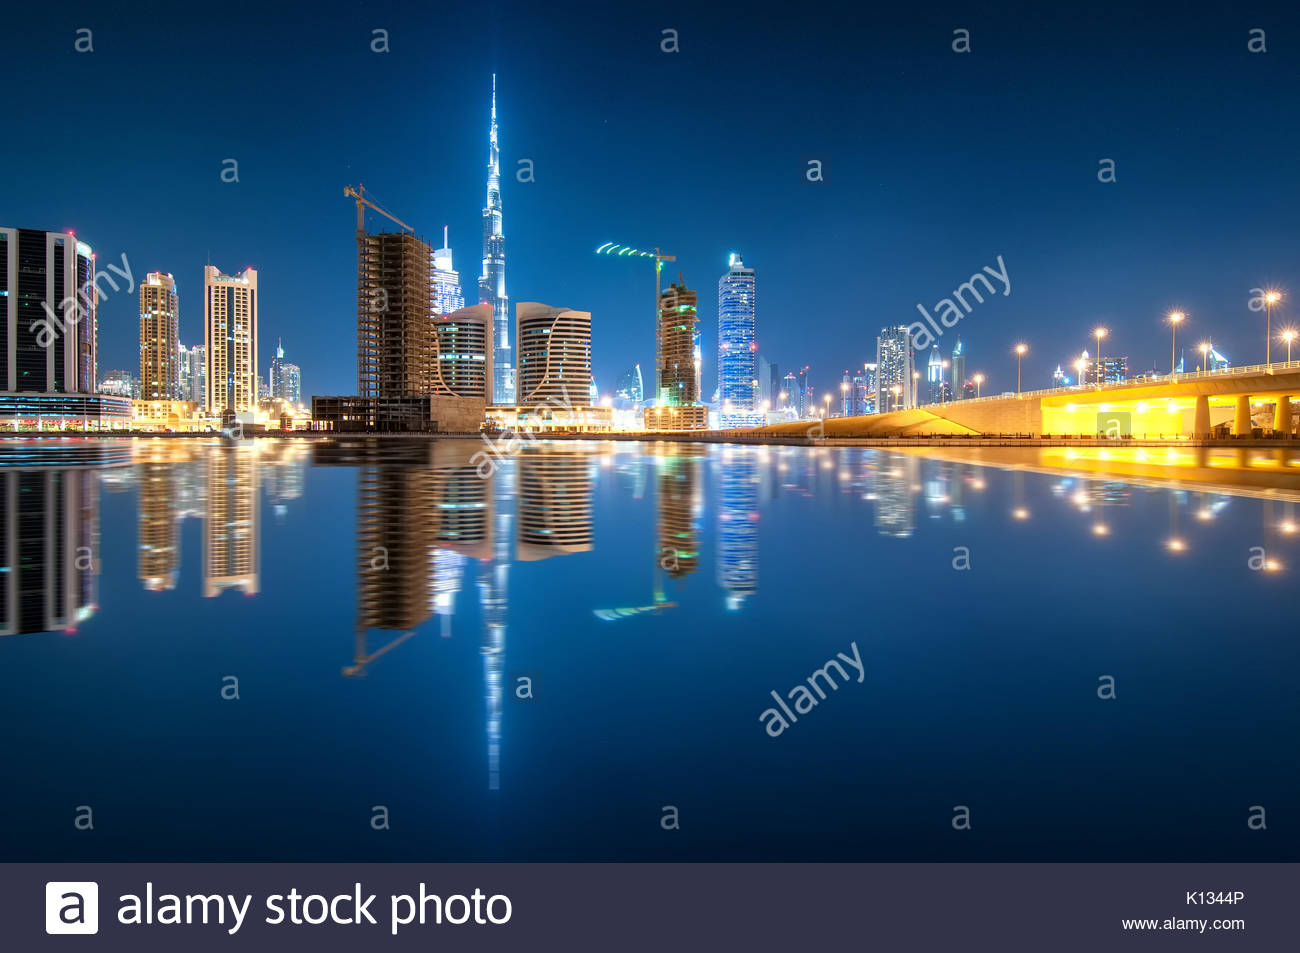 Fascinating reflection of tallest skyscrapers in Business Bay district during calm night. Downtown summer night. - Stock Image